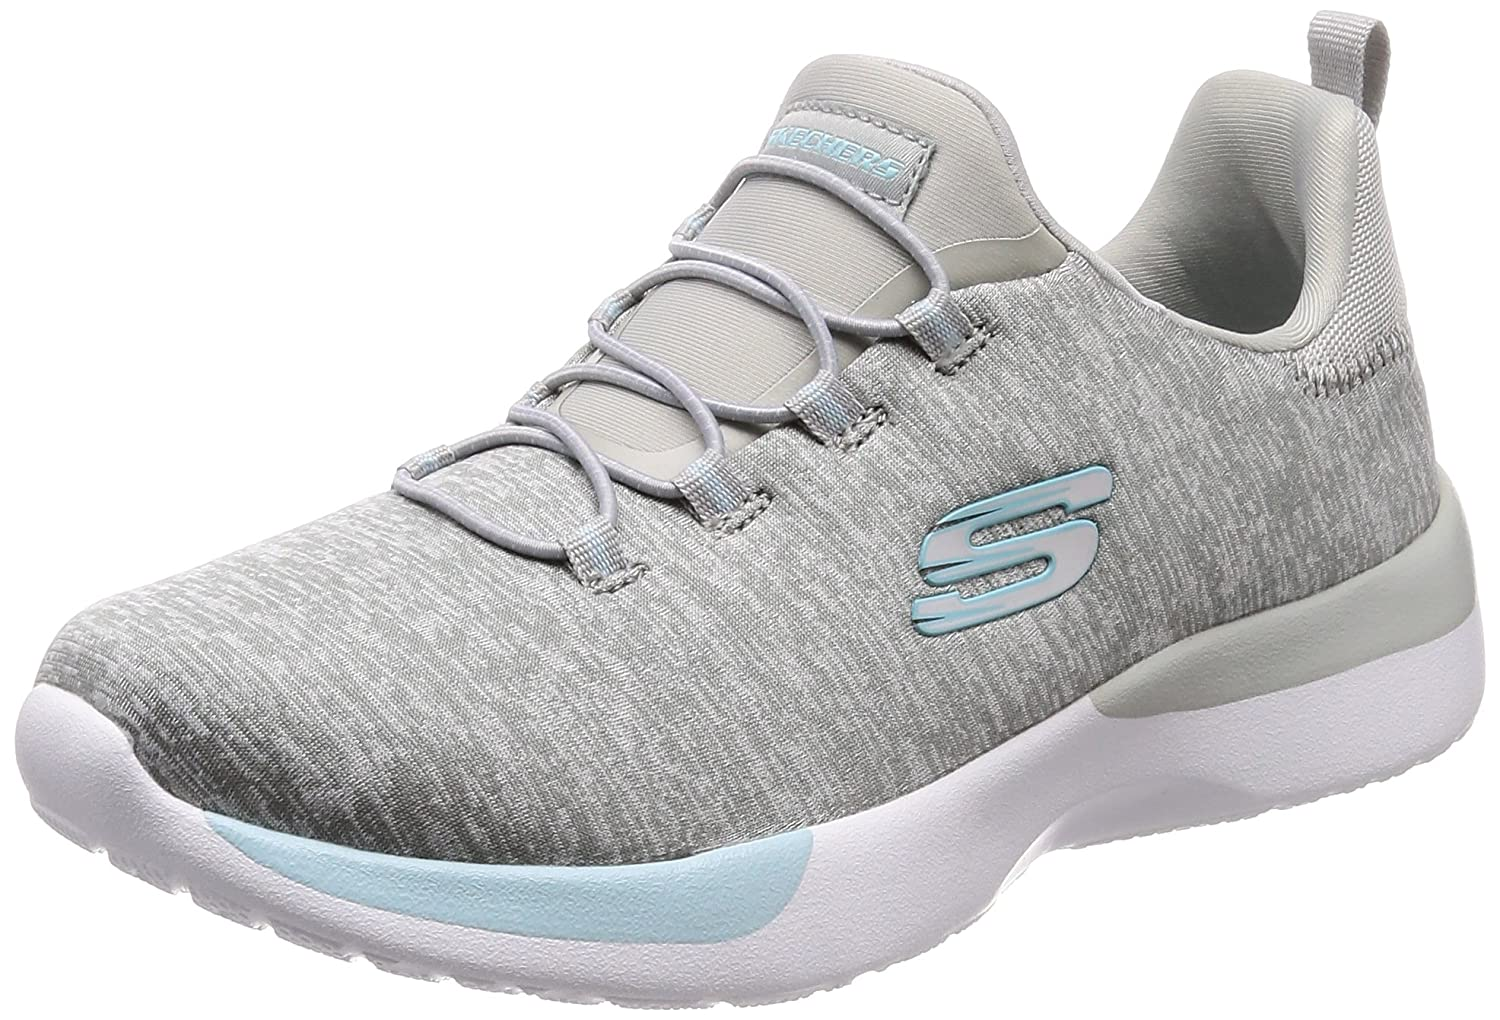 Skechers 12991/GYLP Dynamight-Break-Through Damen Sneaker Slipper Grau/Rosa  40|hellgrau - blau - wei?